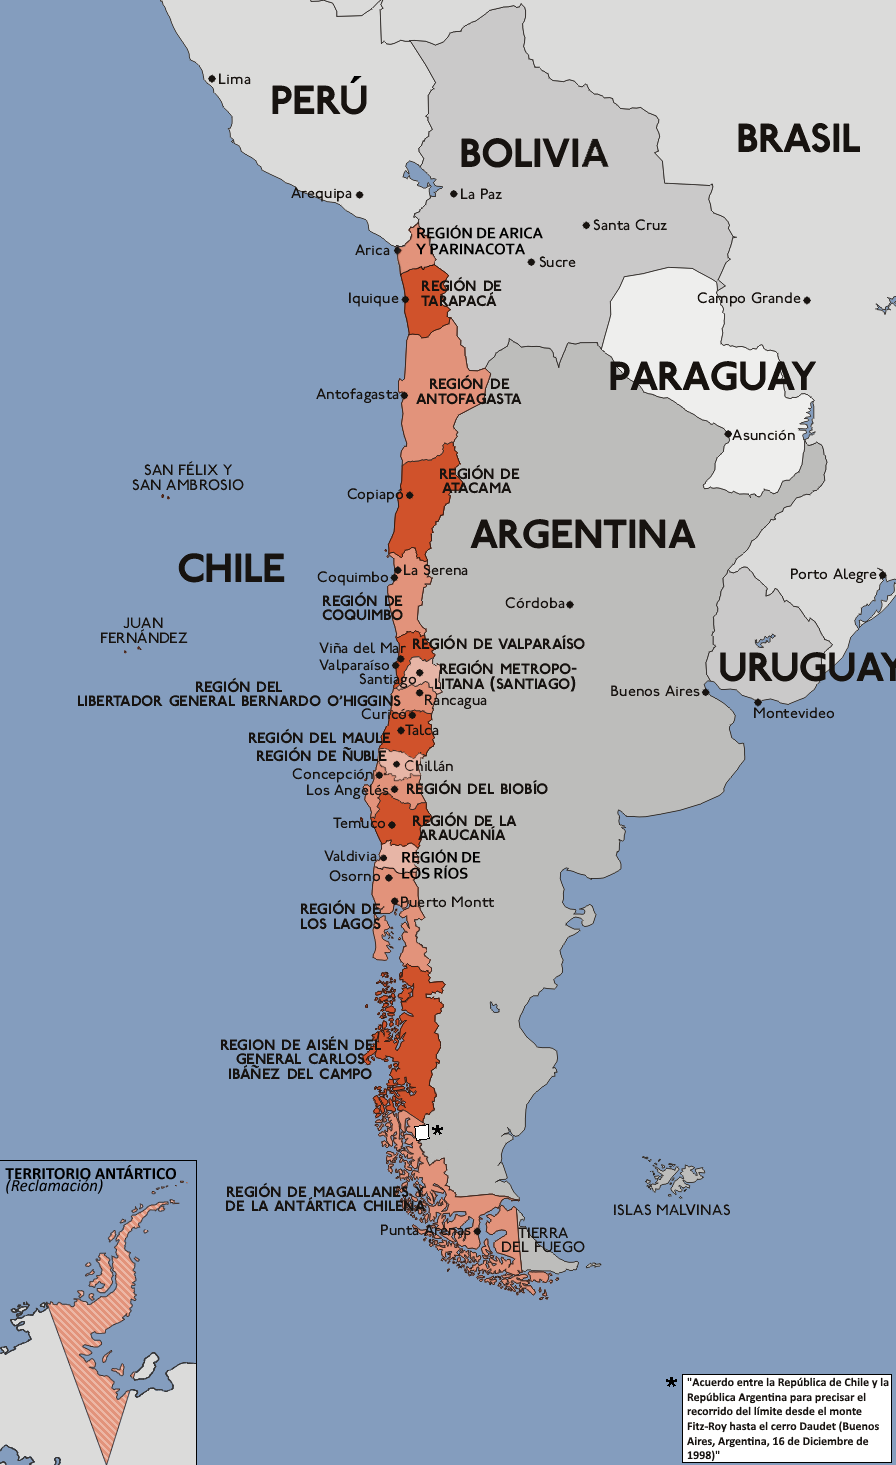 Atlas of Chile - Wikimedia Commons on barbados cities map, trinidad cities map, persia cities map, latvia cities map, united states of america cities map, tibet cities map, paraguay cities map, ancient near east cities map, chile coast beach, south sudan cities map, serbia cities map, guinea cities map, baffin island cities map, guam cities map, luxembourg cities map, antarctic cities map, chad cities map, senegal cities map, belarus cities map, slovakia cities map,